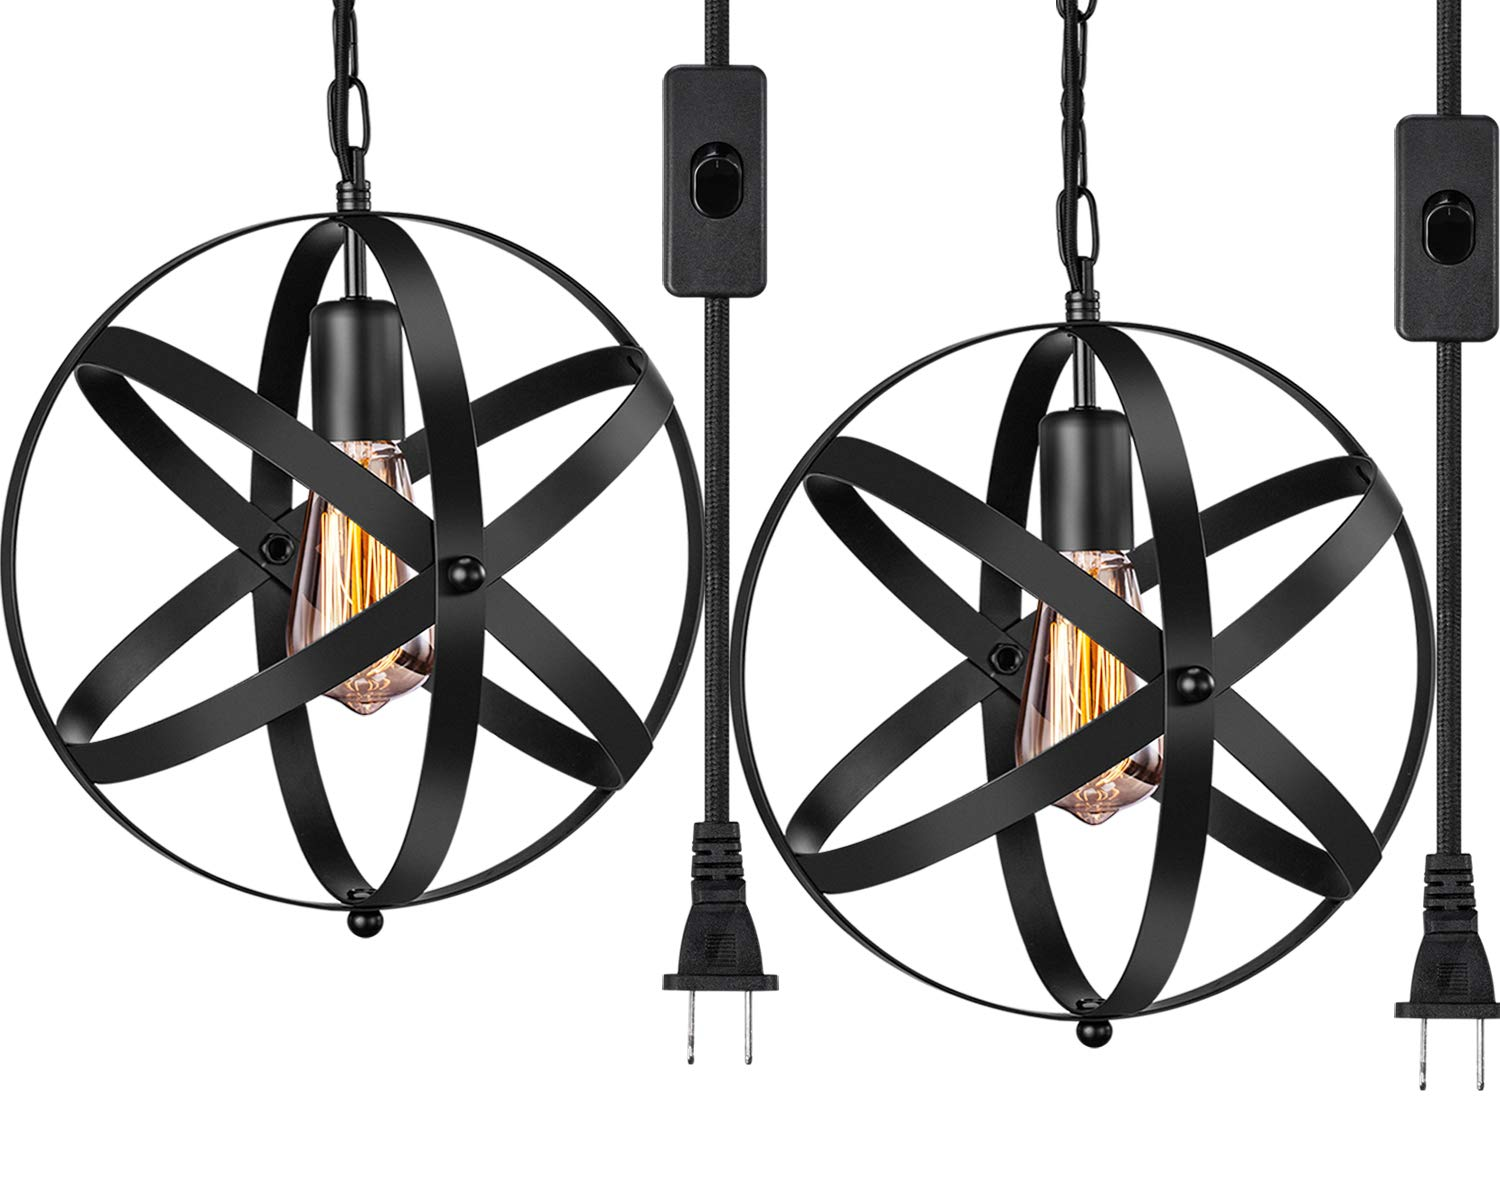 Industrial Plug in Pendant Light INNOCCY E26 E27 Industrial Hanging Light Metal Globe Vintage Pendant Light Fixture with 14.8Ft Hanging Cord and ON/OFF Switch 2 Pack by INNOCCY (Image #1)